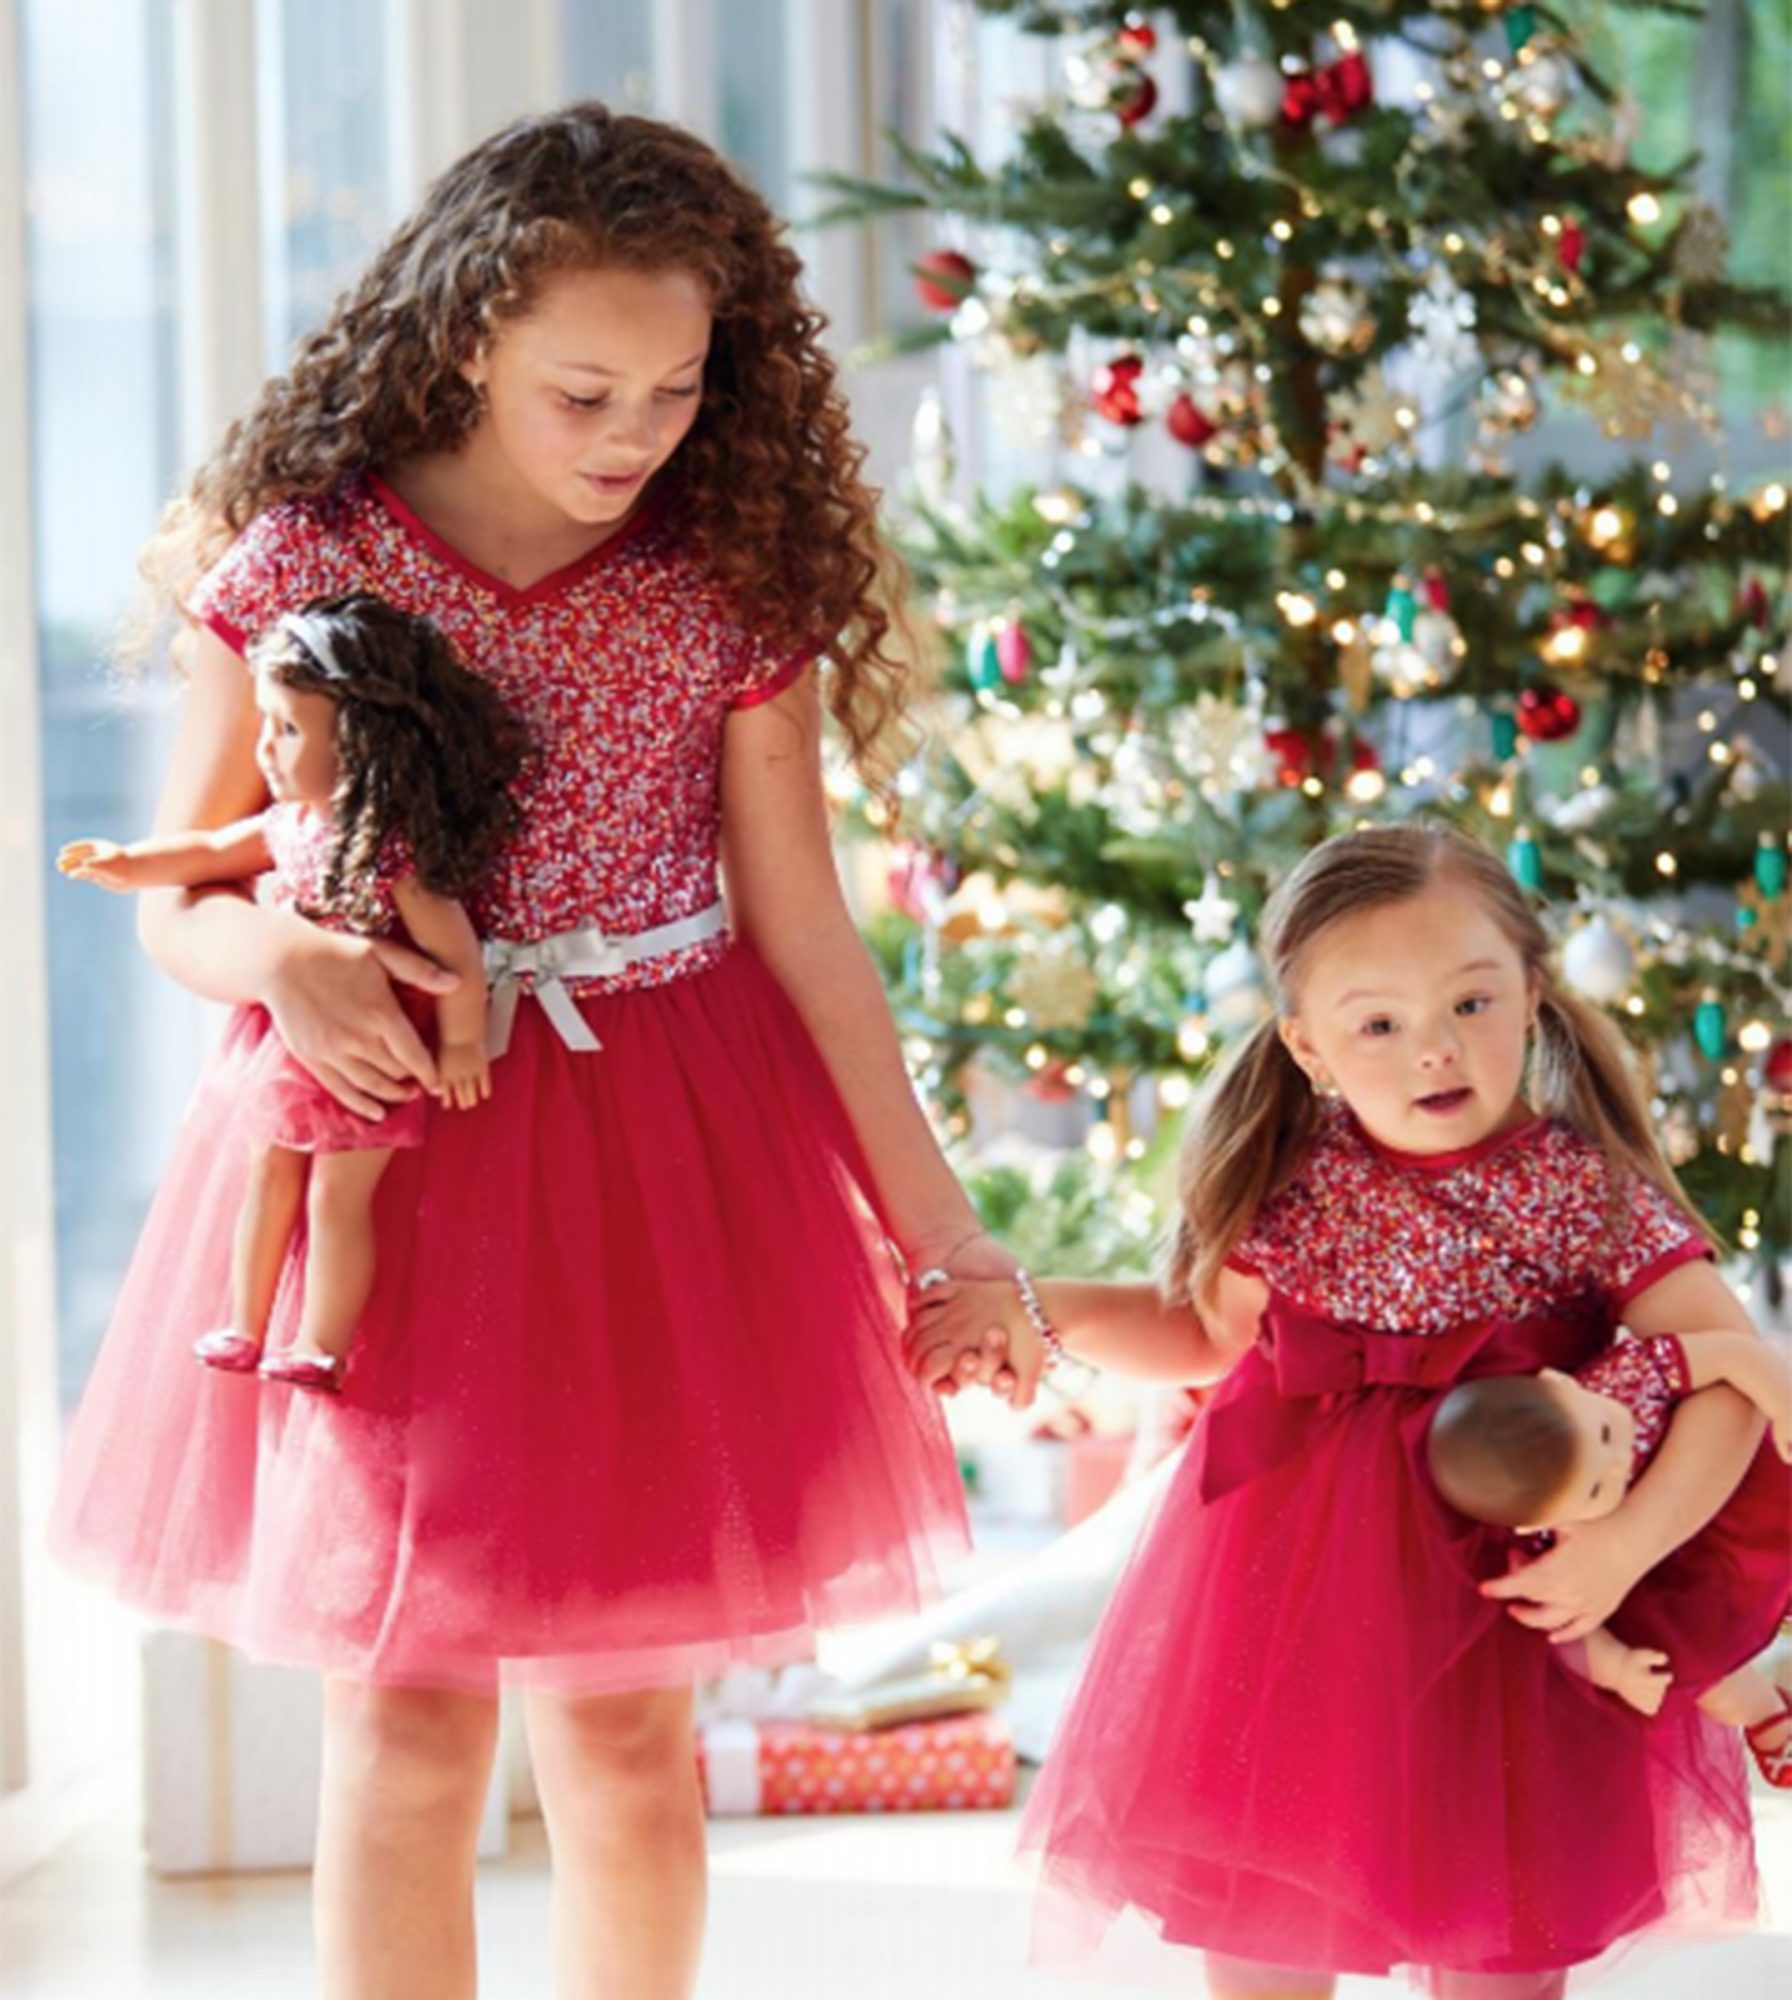 October American Girl catalog features girl with Down Syndrome